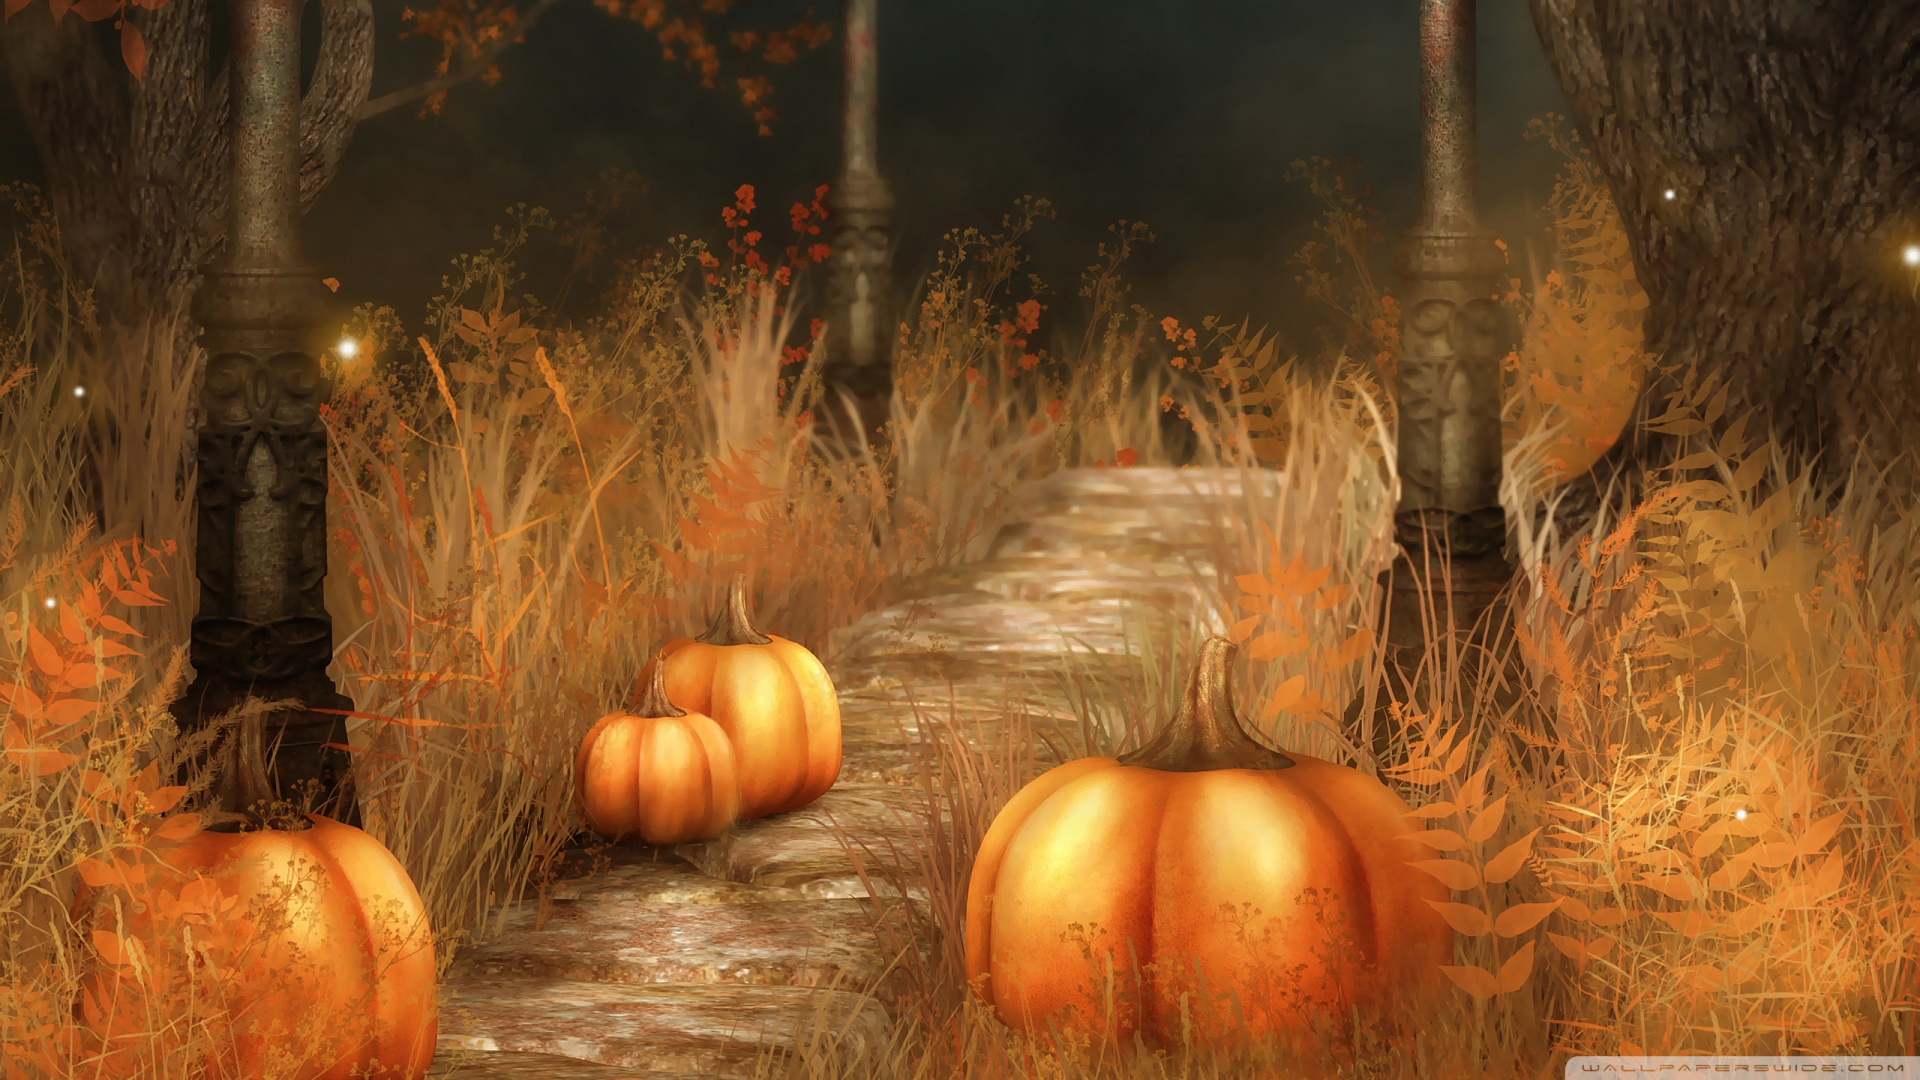 Pumpkins Halloween Wallpaper Download 1920x1080